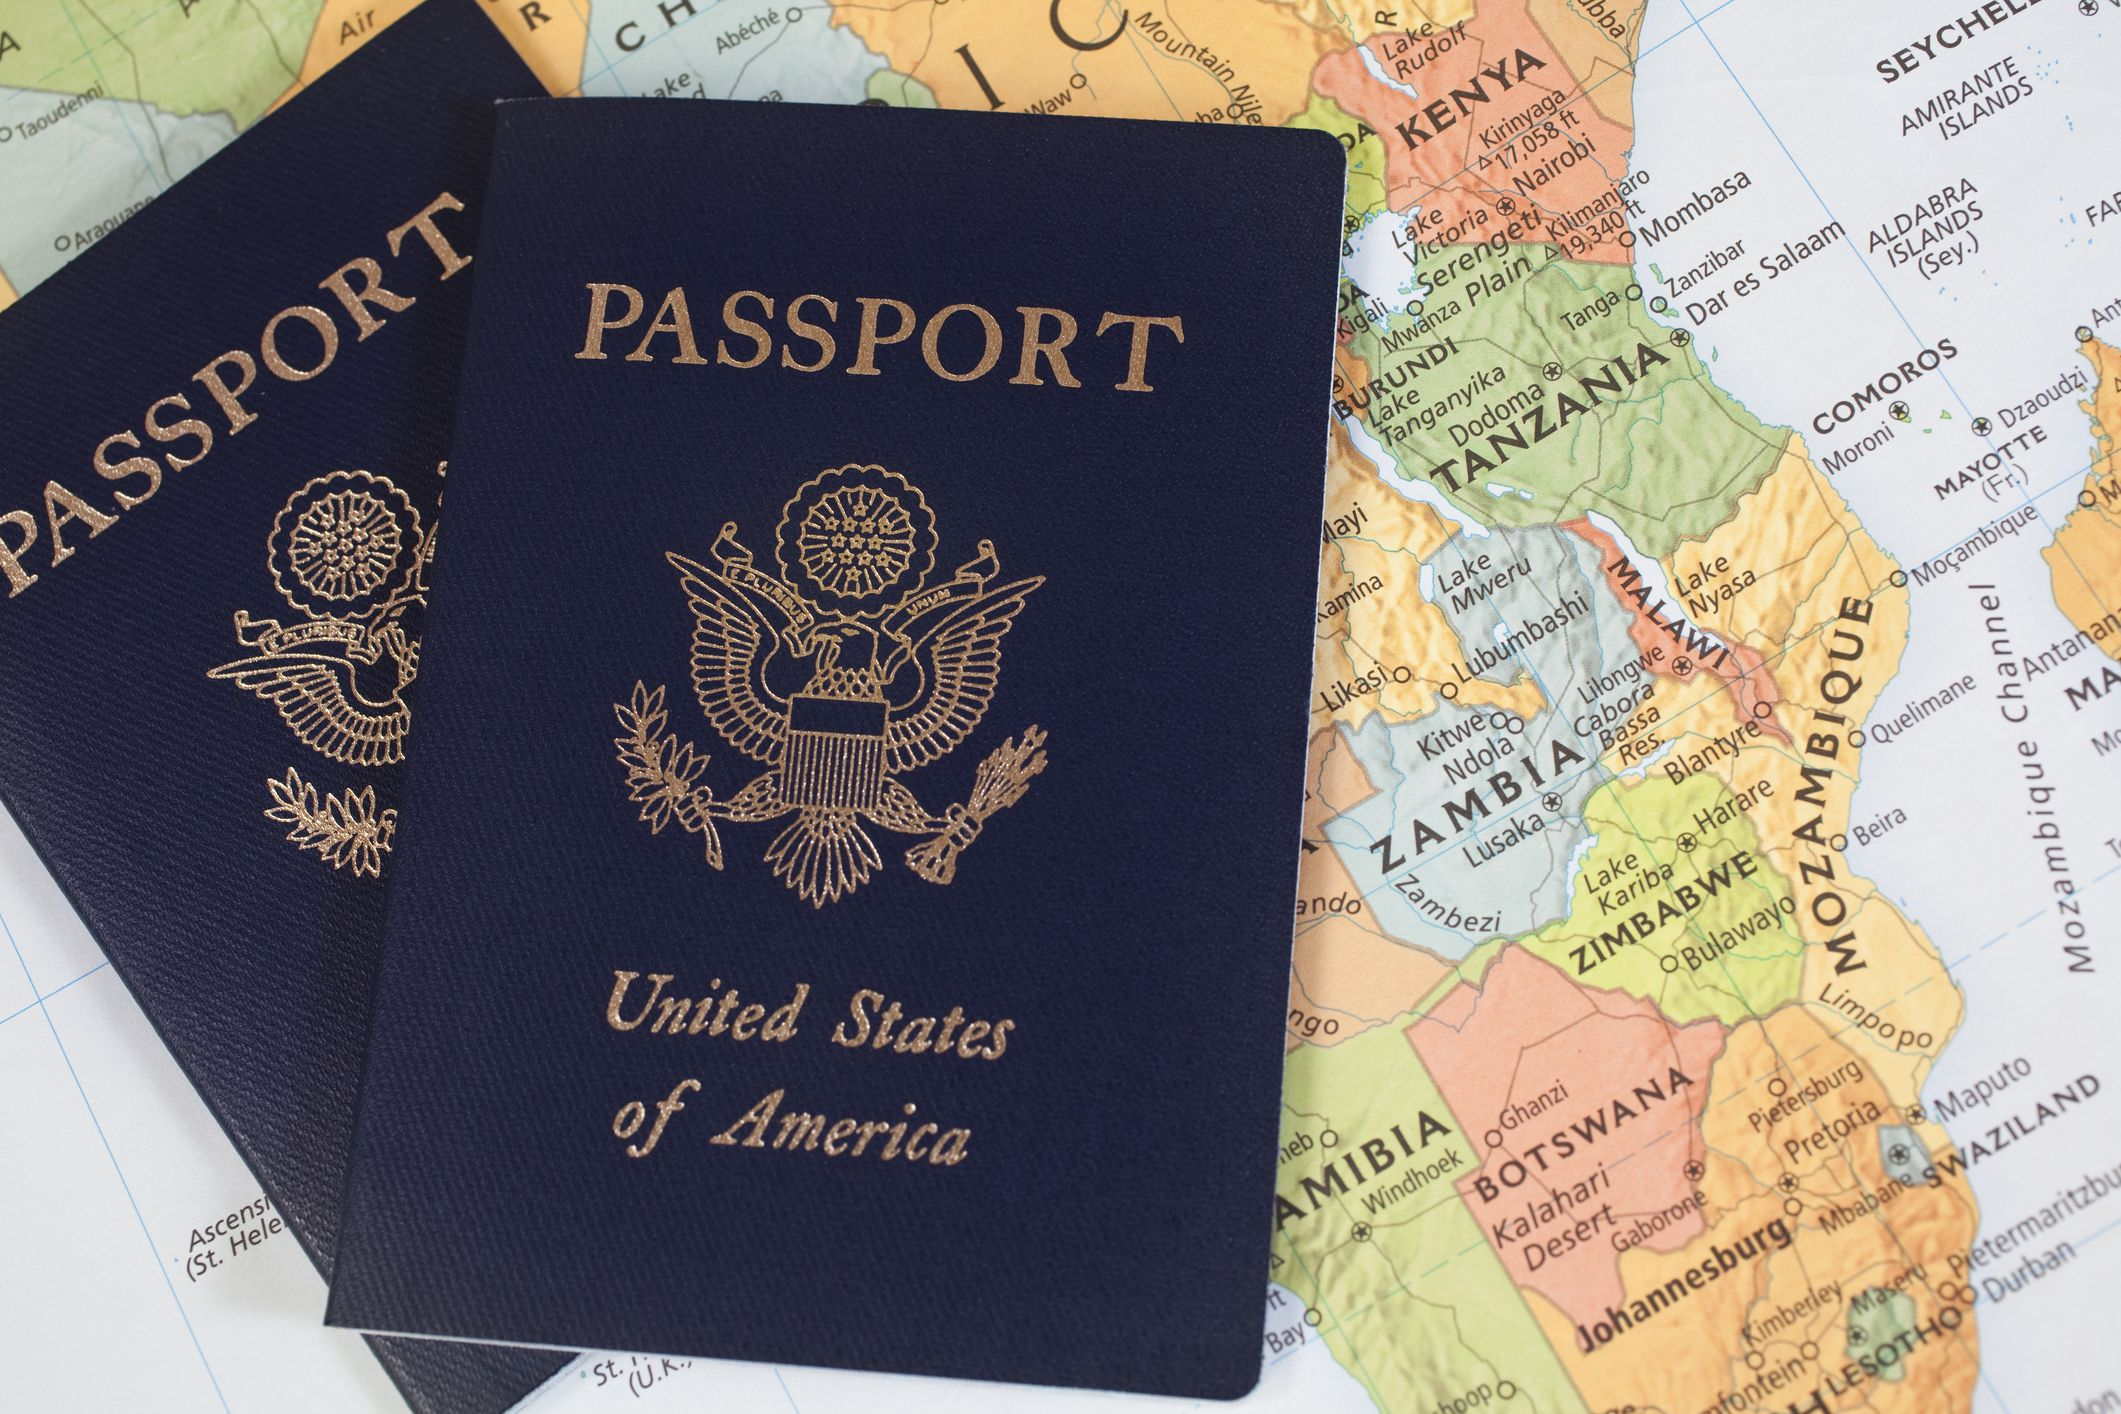 Expedited Passport Renewal - When You Need A Passport In A Hurry